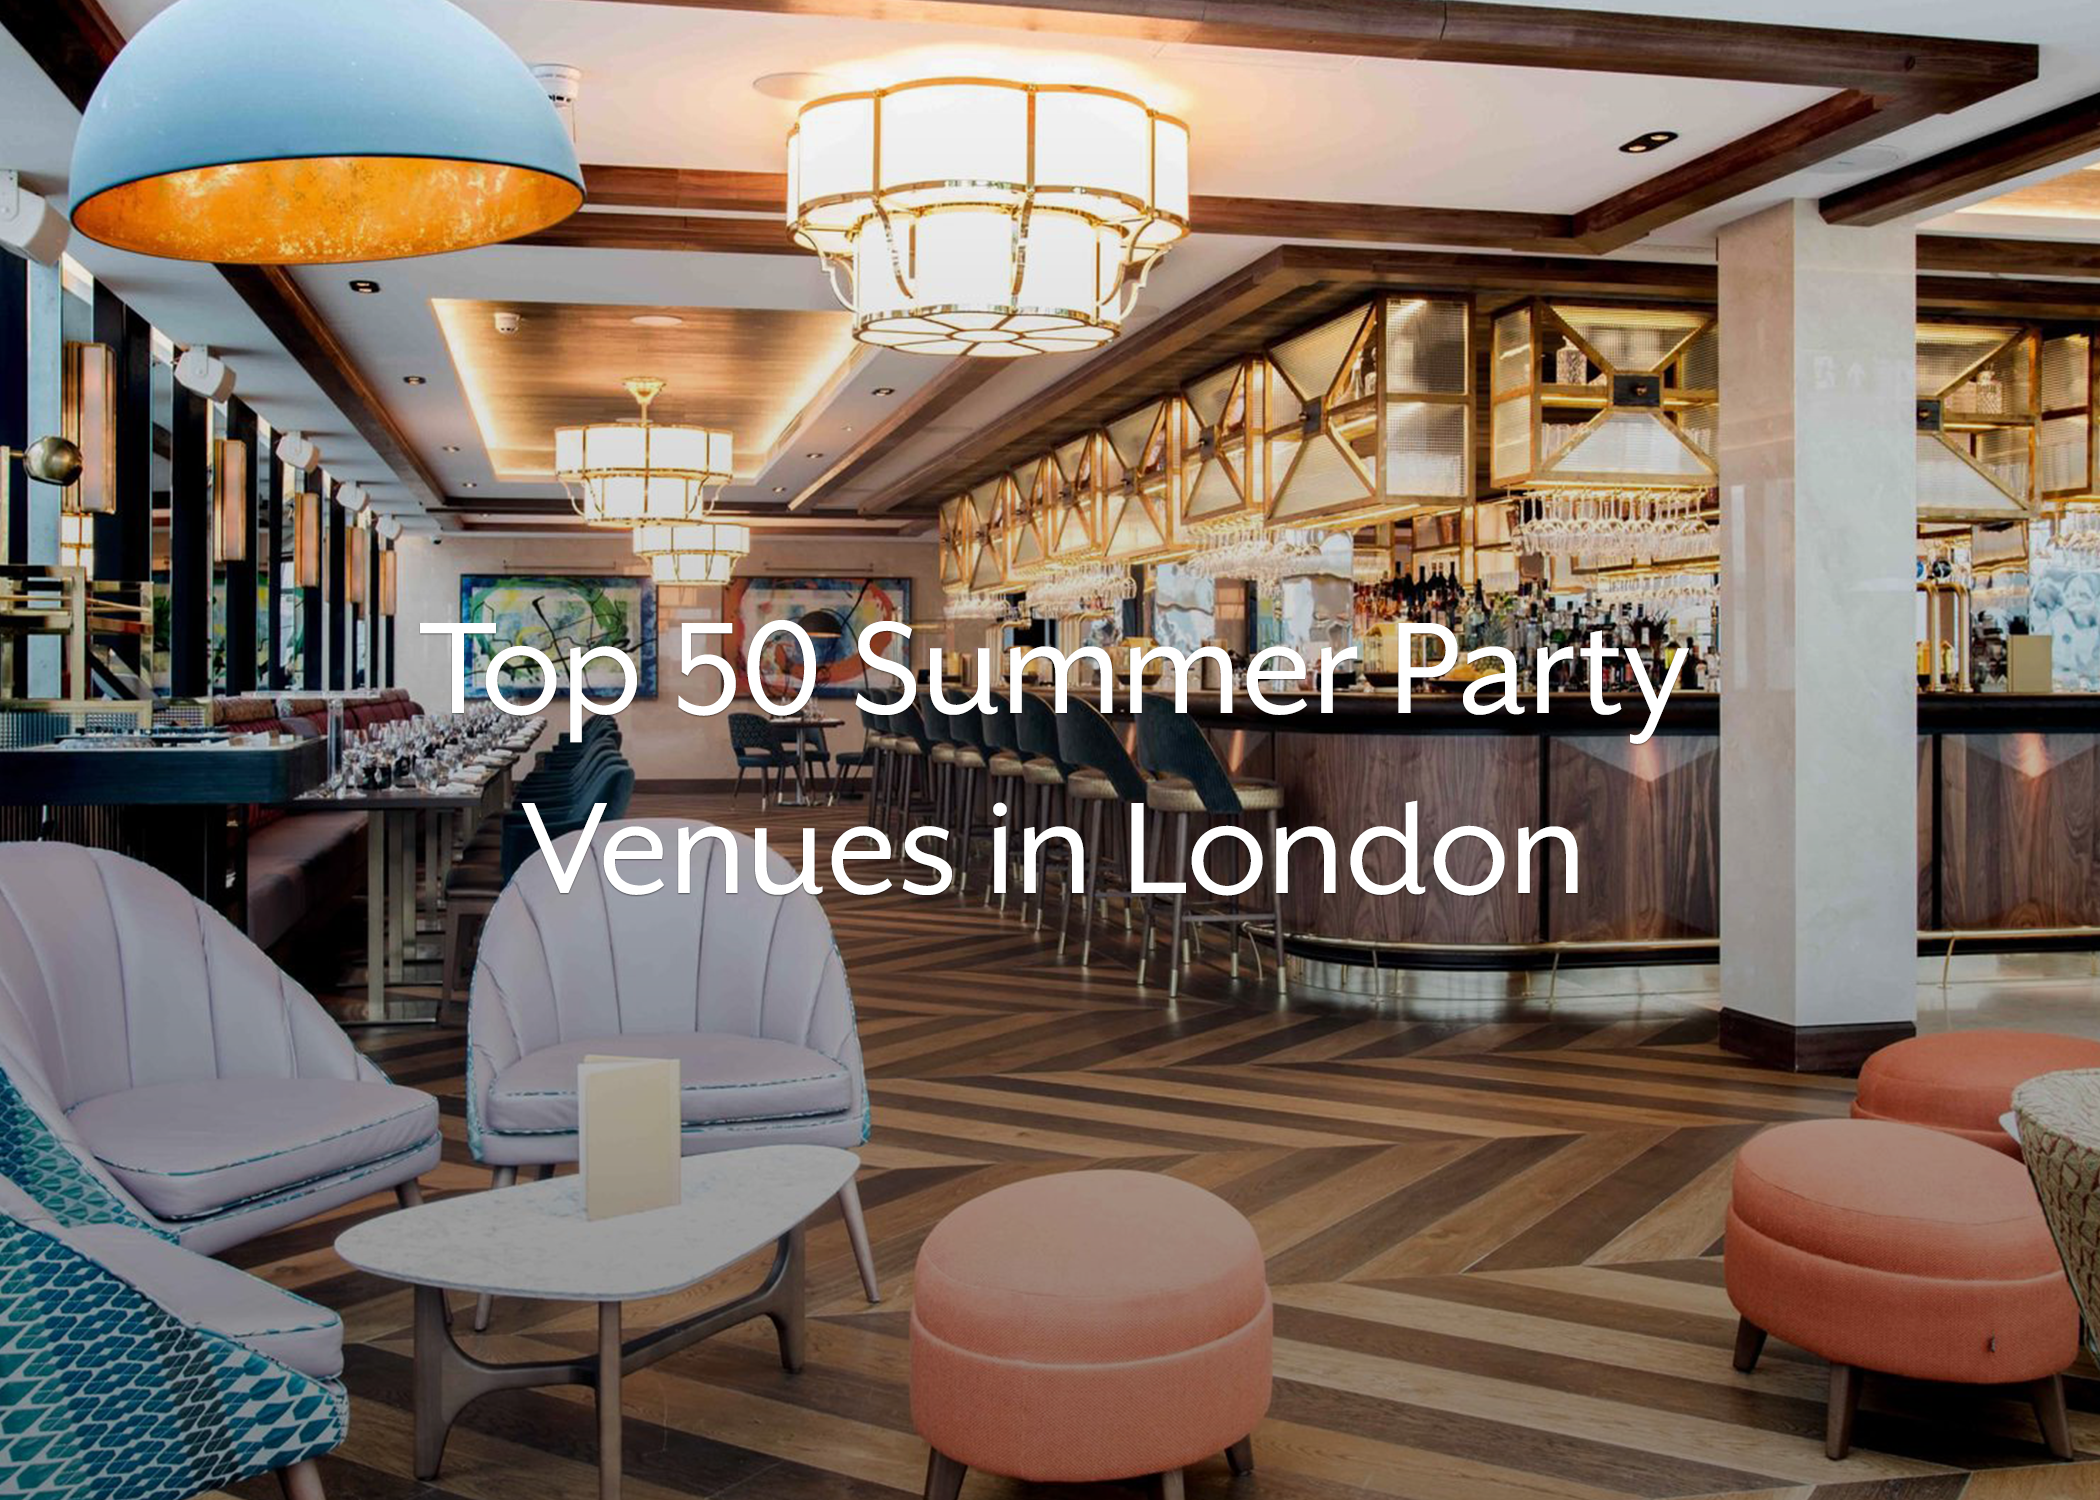 Top 50 Summer Party Venues in